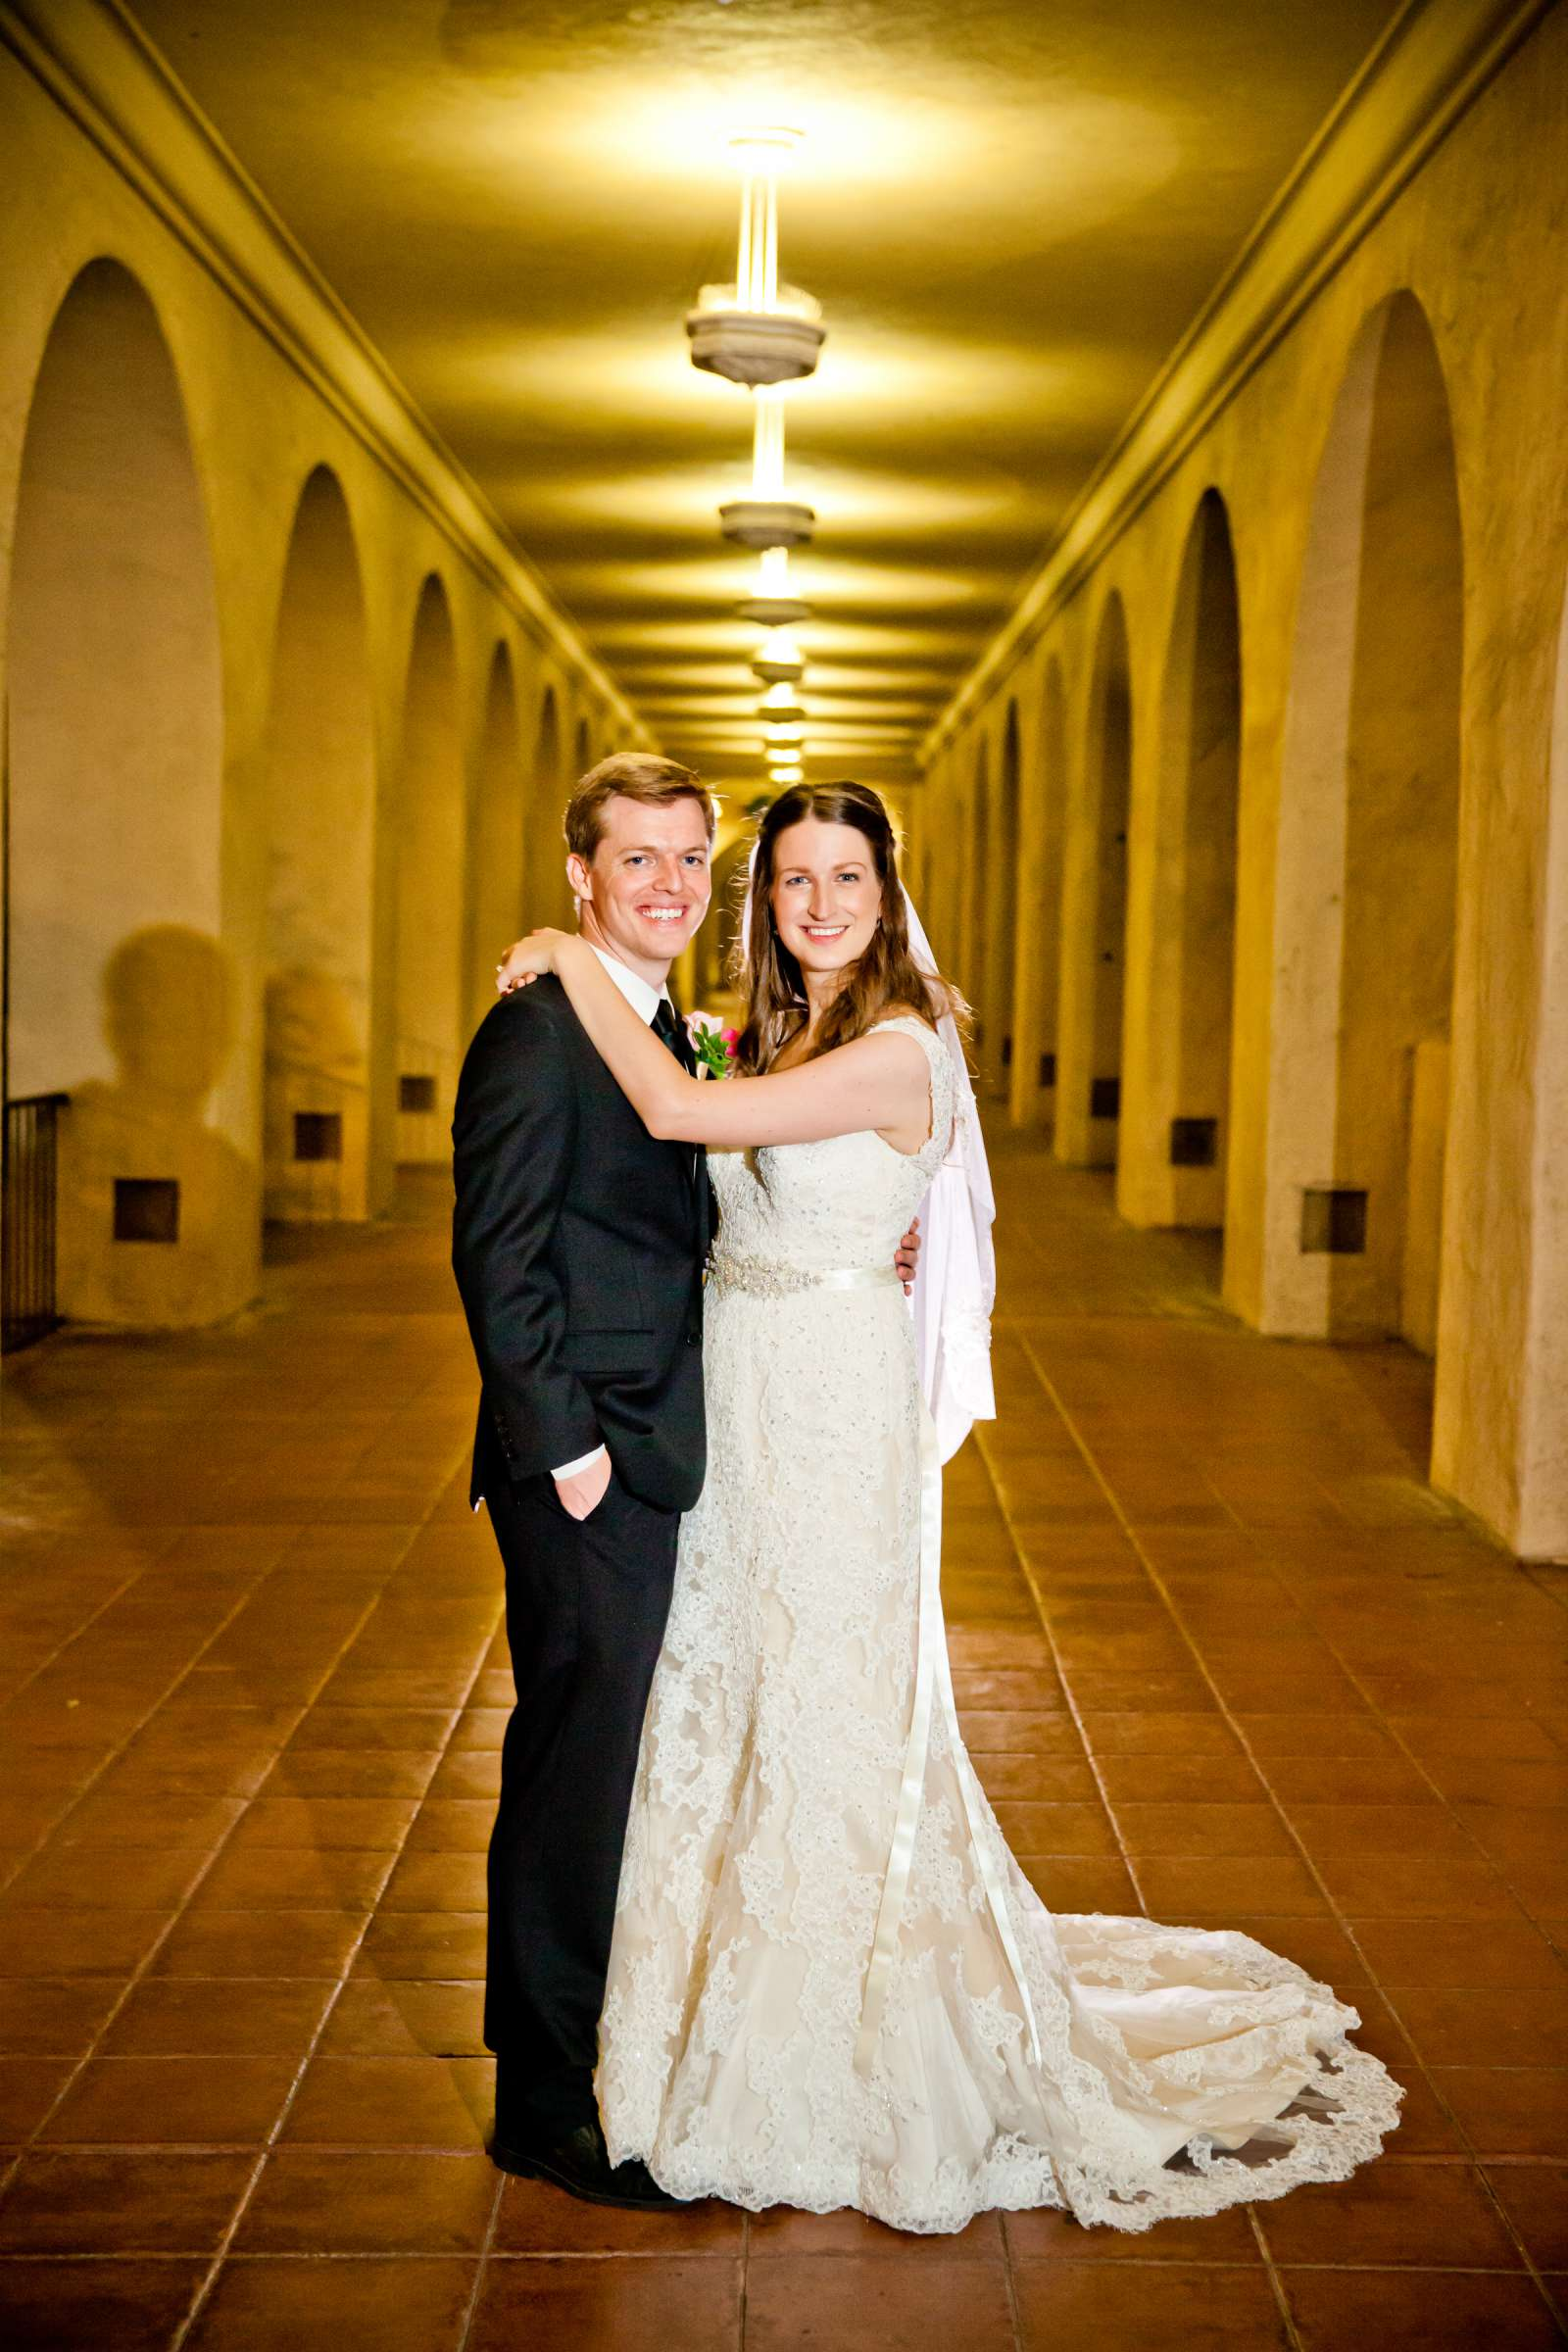 The Prado Wedding coordinated by First Comes Love Weddings & Events, Erin and Peter Wedding Photo #12 by True Photography